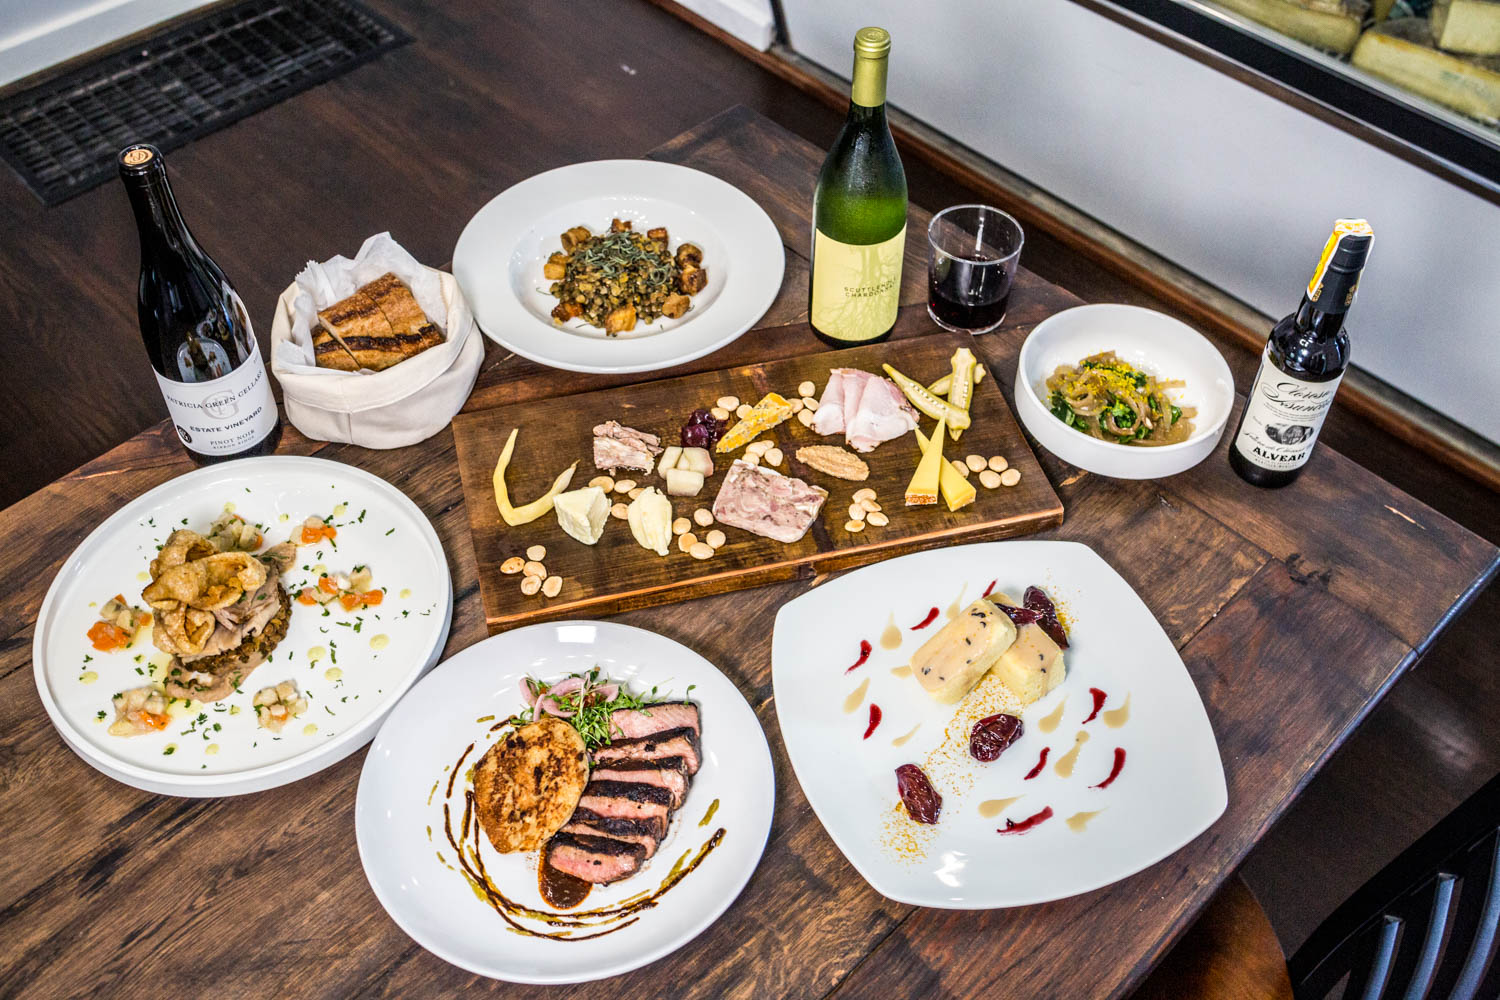 Rinds, Wines, and Swines is an O'Bryonville dining and retail spot that specializes in a variety of pork and cheese dishes along with wine and beer. Chef Eric Salome is a Texas transplant who encourages patrons to try something new from the rotating menu. The pork products and produce are sourced locally and they make items like their mayo, mustard, jams, and pickled veggies from scratch every week. The pigs are butchered in-house to ensure the freshest quality. ADDRESS: 1979 Madison Road (45208) / Image: Catherine Viox // Published: 10.16.19